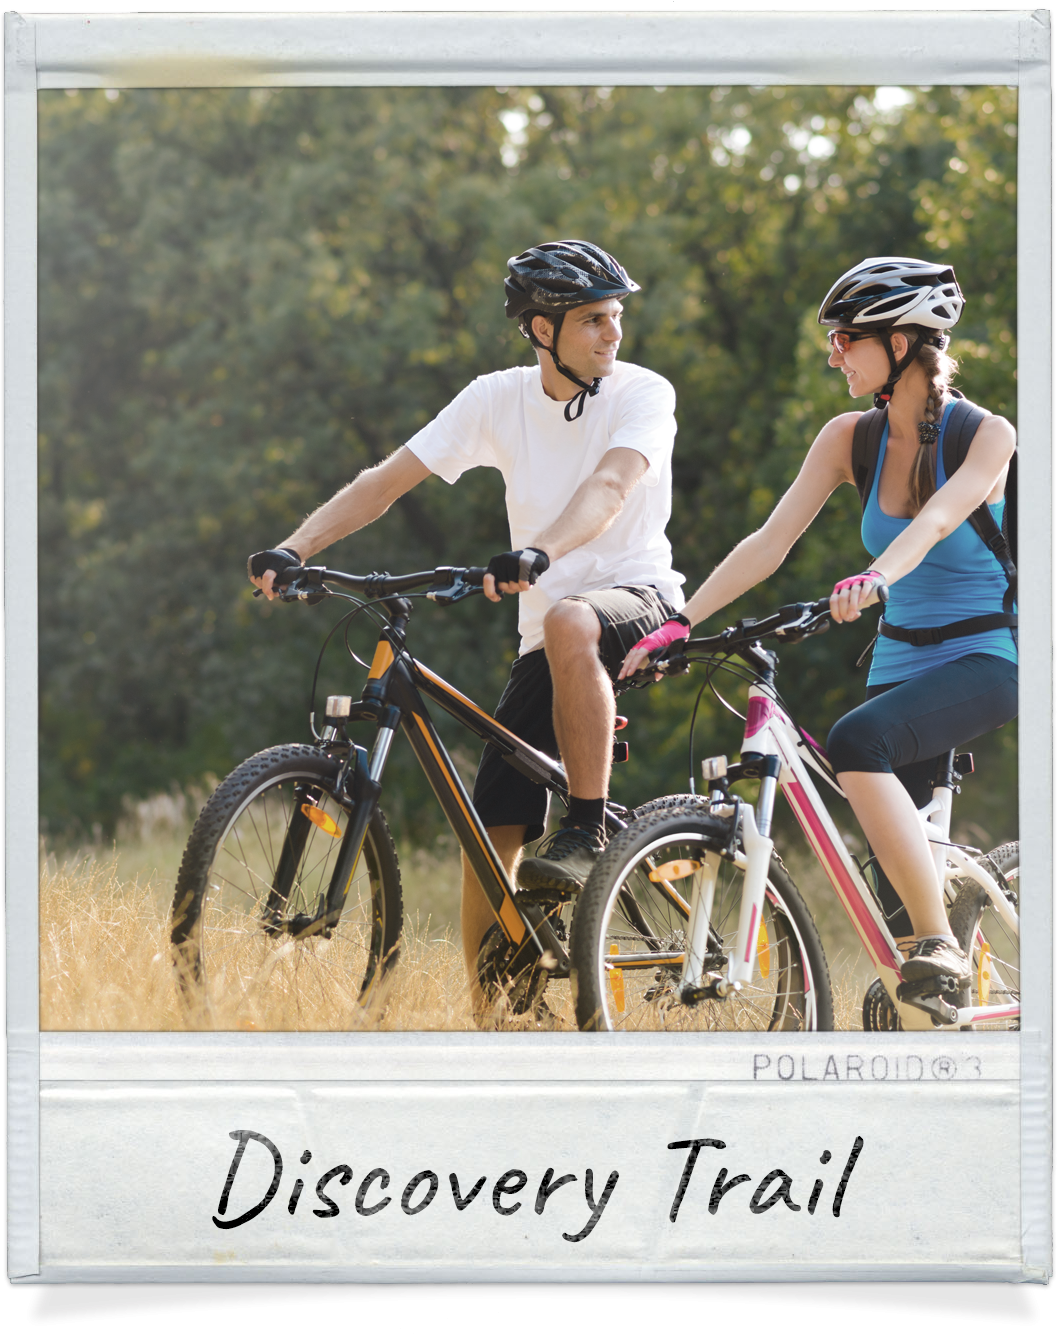 bicycling on the Discovery Trail